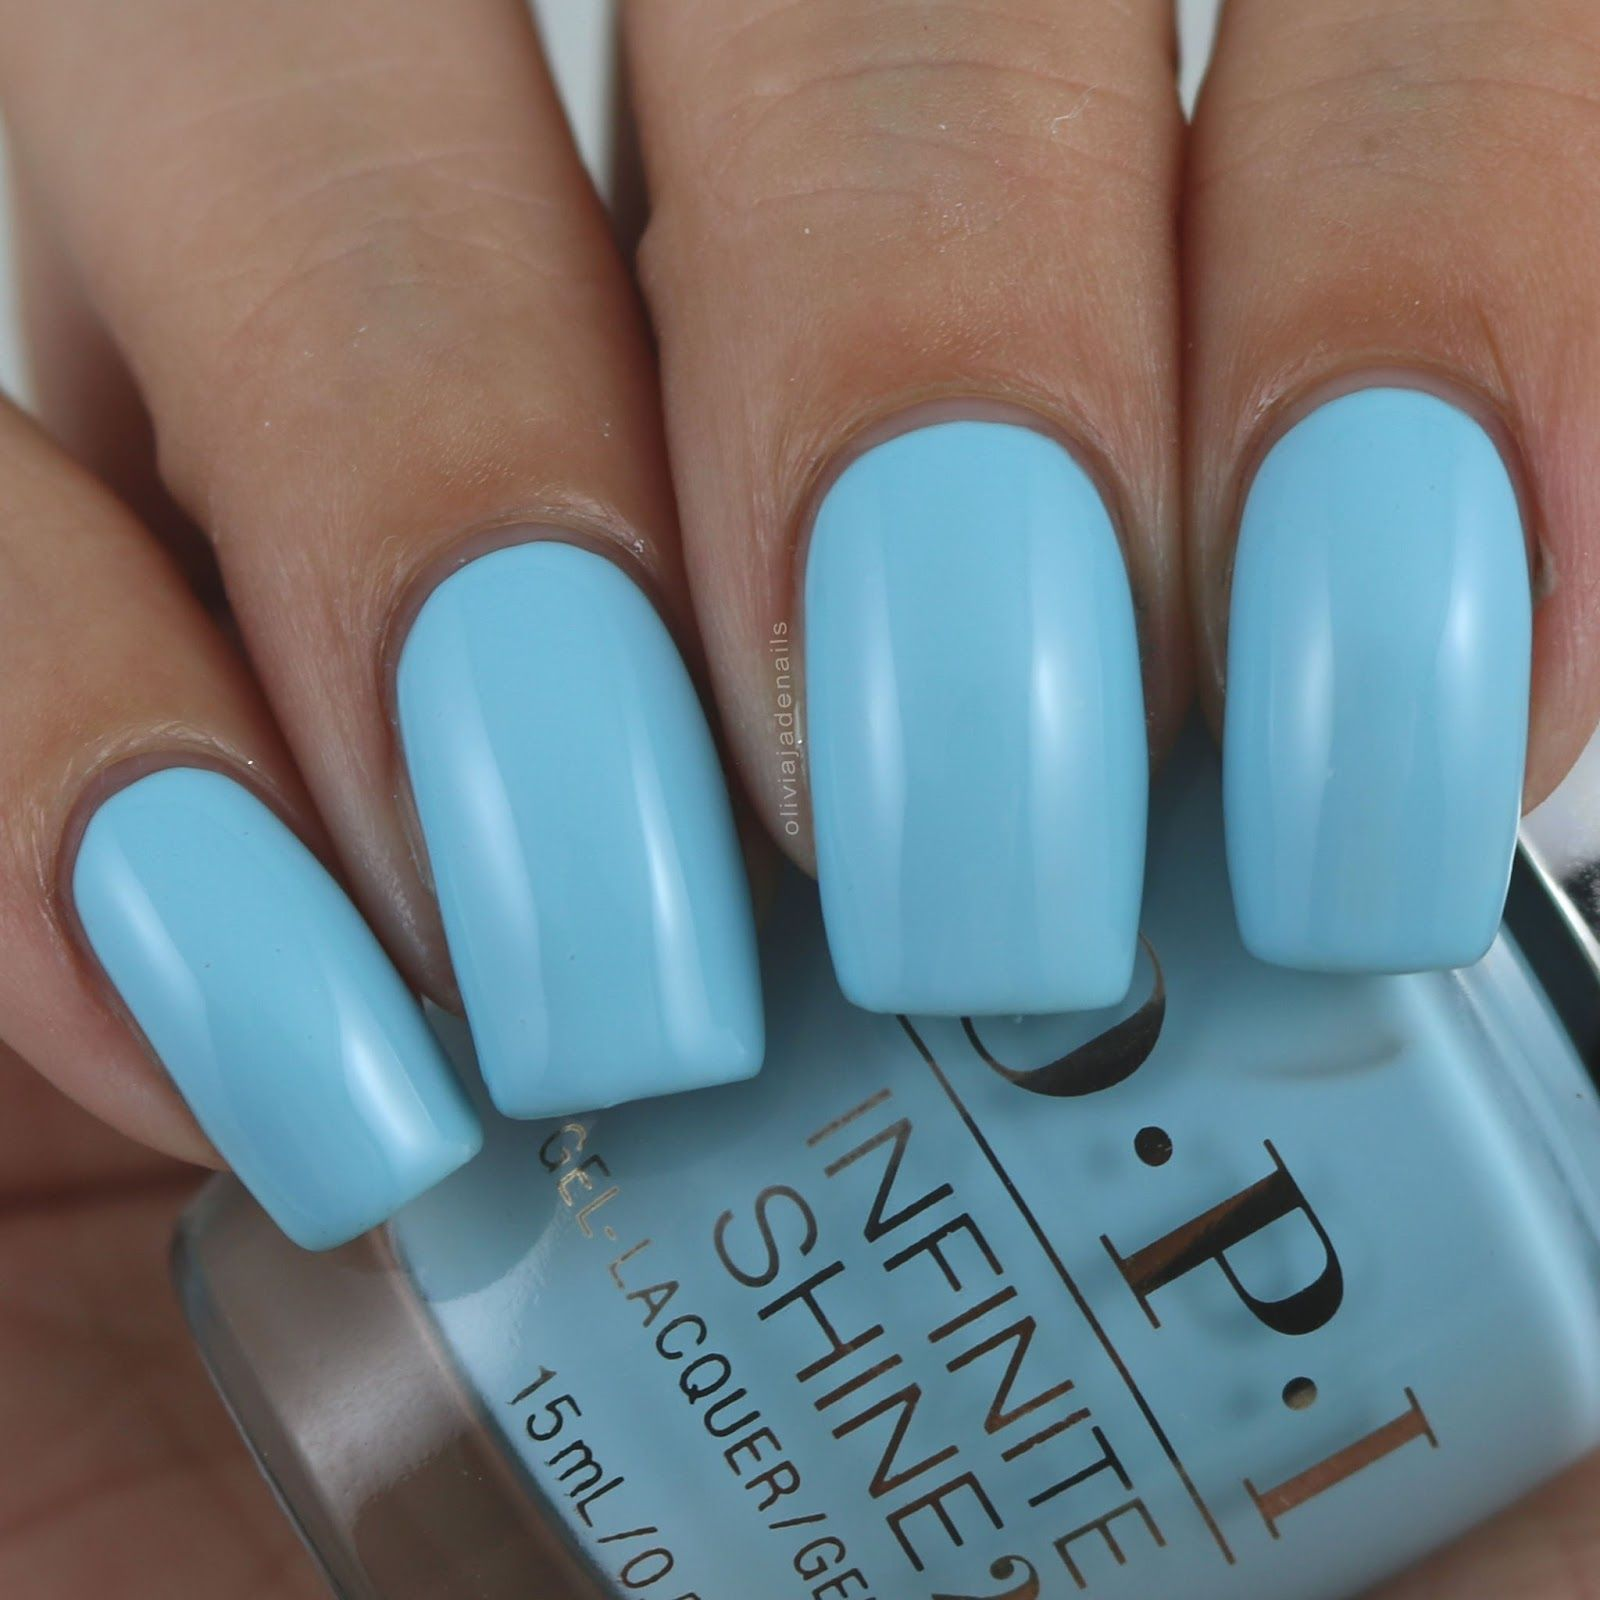 OPI I Believe In Manicures swatched by Olivia Jade Nails